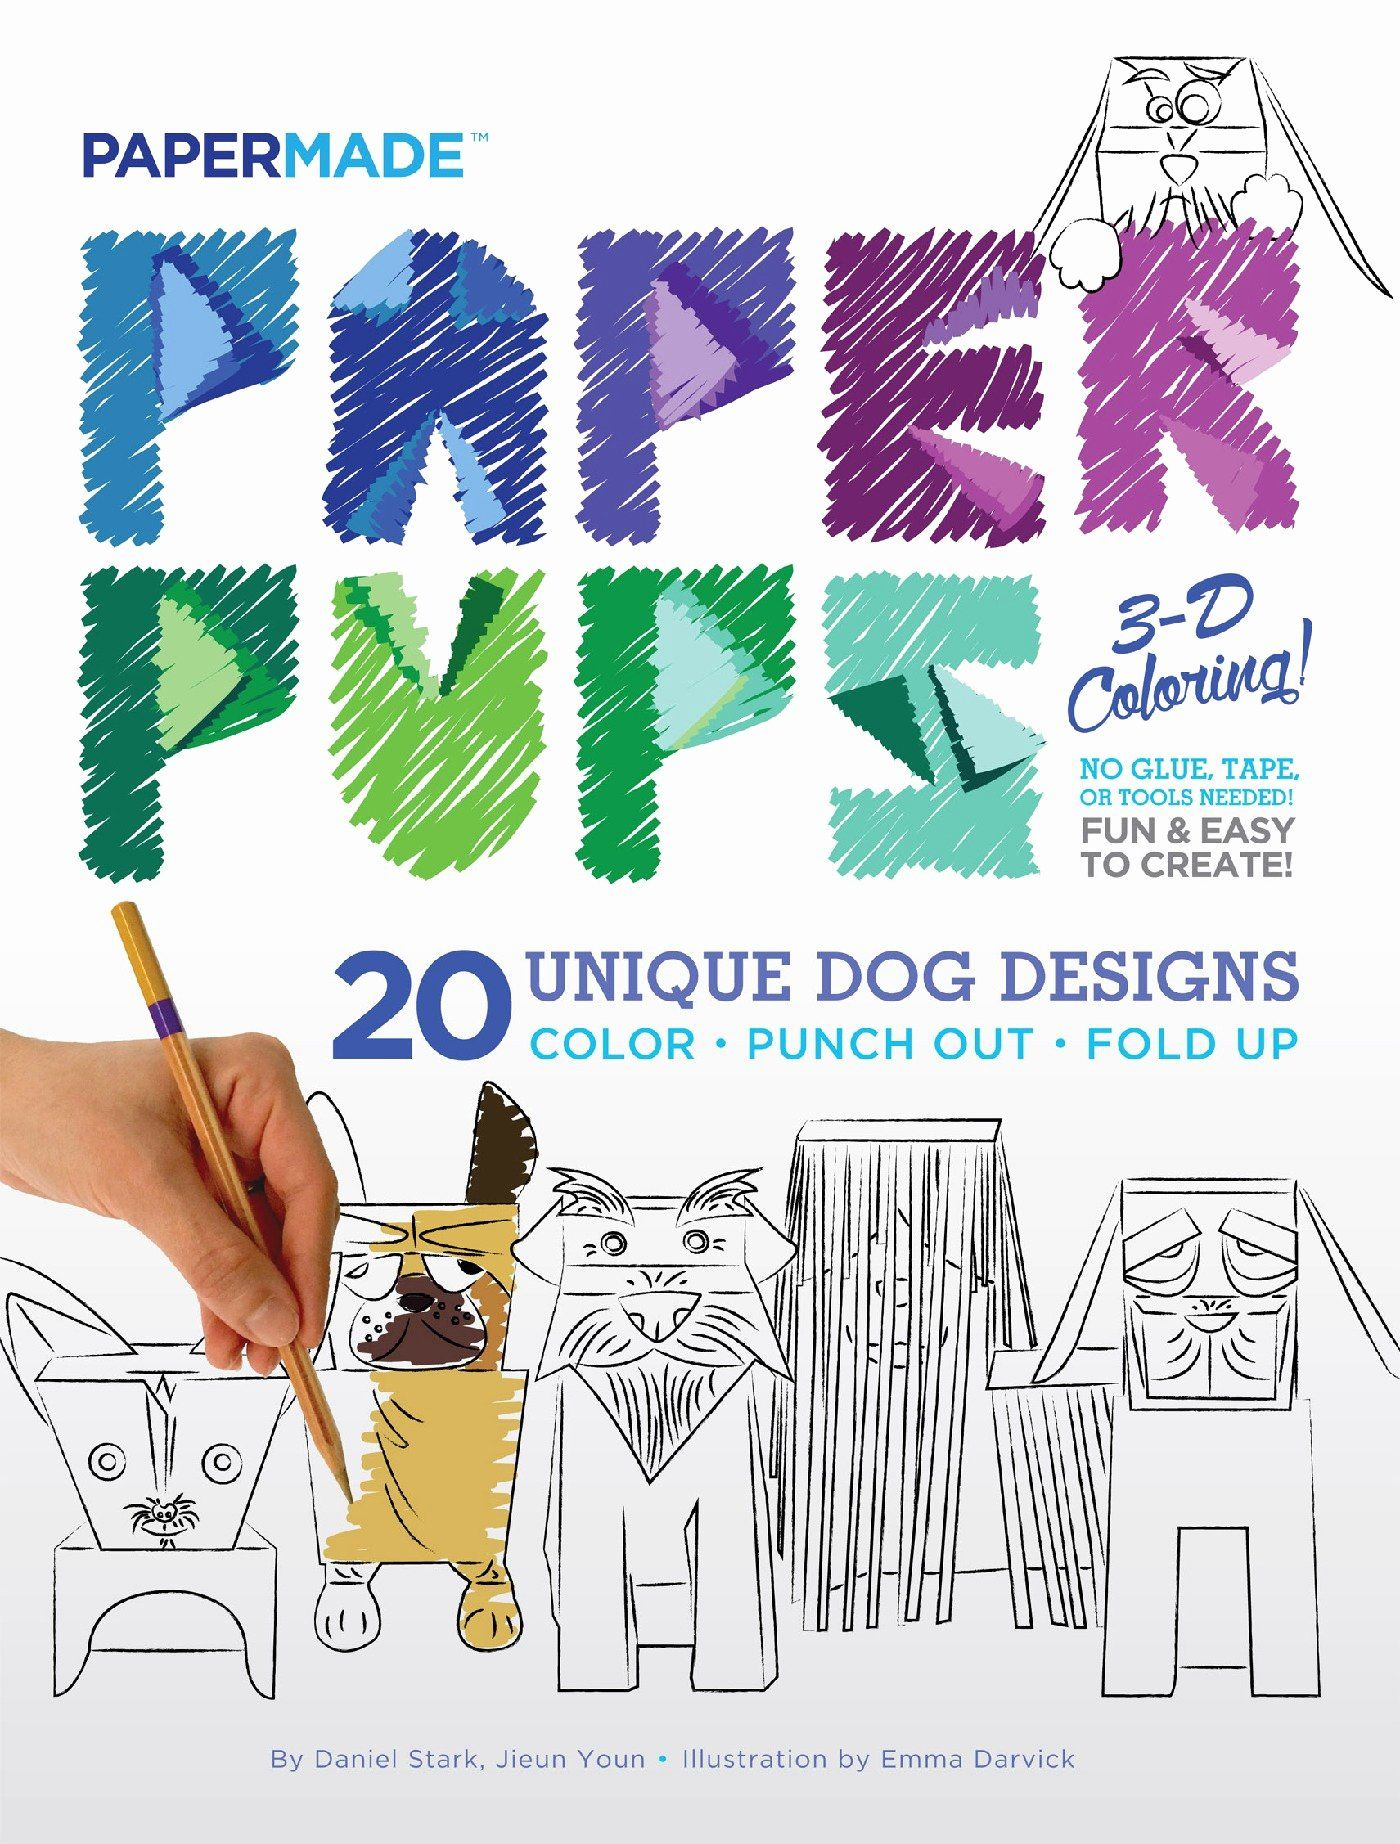 Crayola 3d Coloring Book Fresh Coloring Pages Disney Coloring Book Pc Game Movies In 2020 Crayola Coloring Pages Coloring Books Coloring Pages